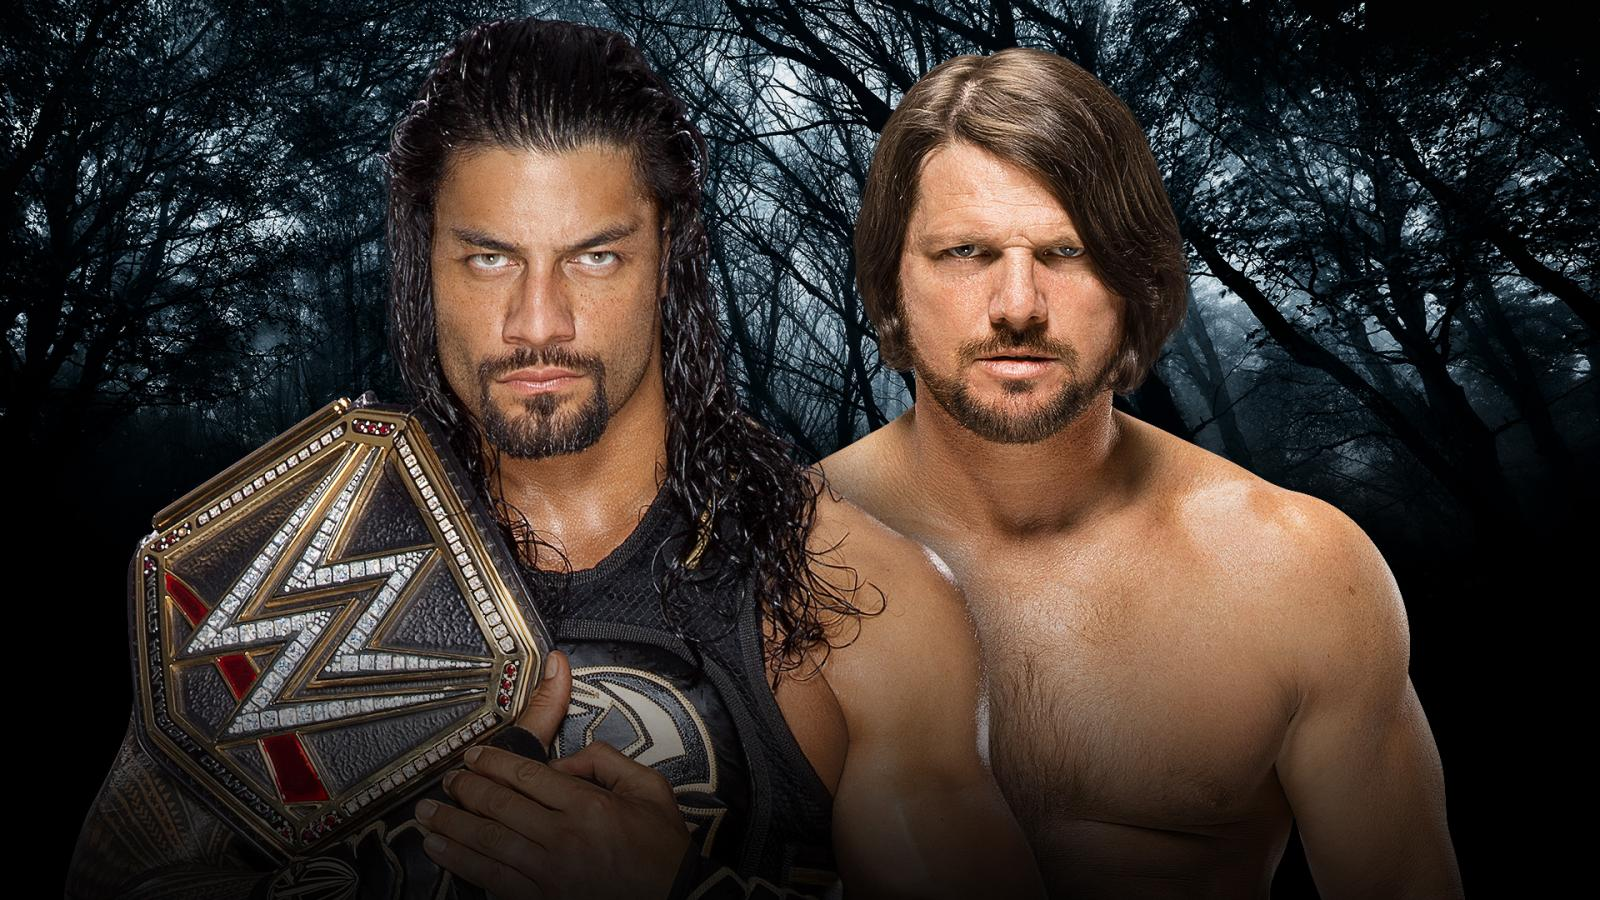 WWE Payback - Roman Reigns Vs. AJ Styles